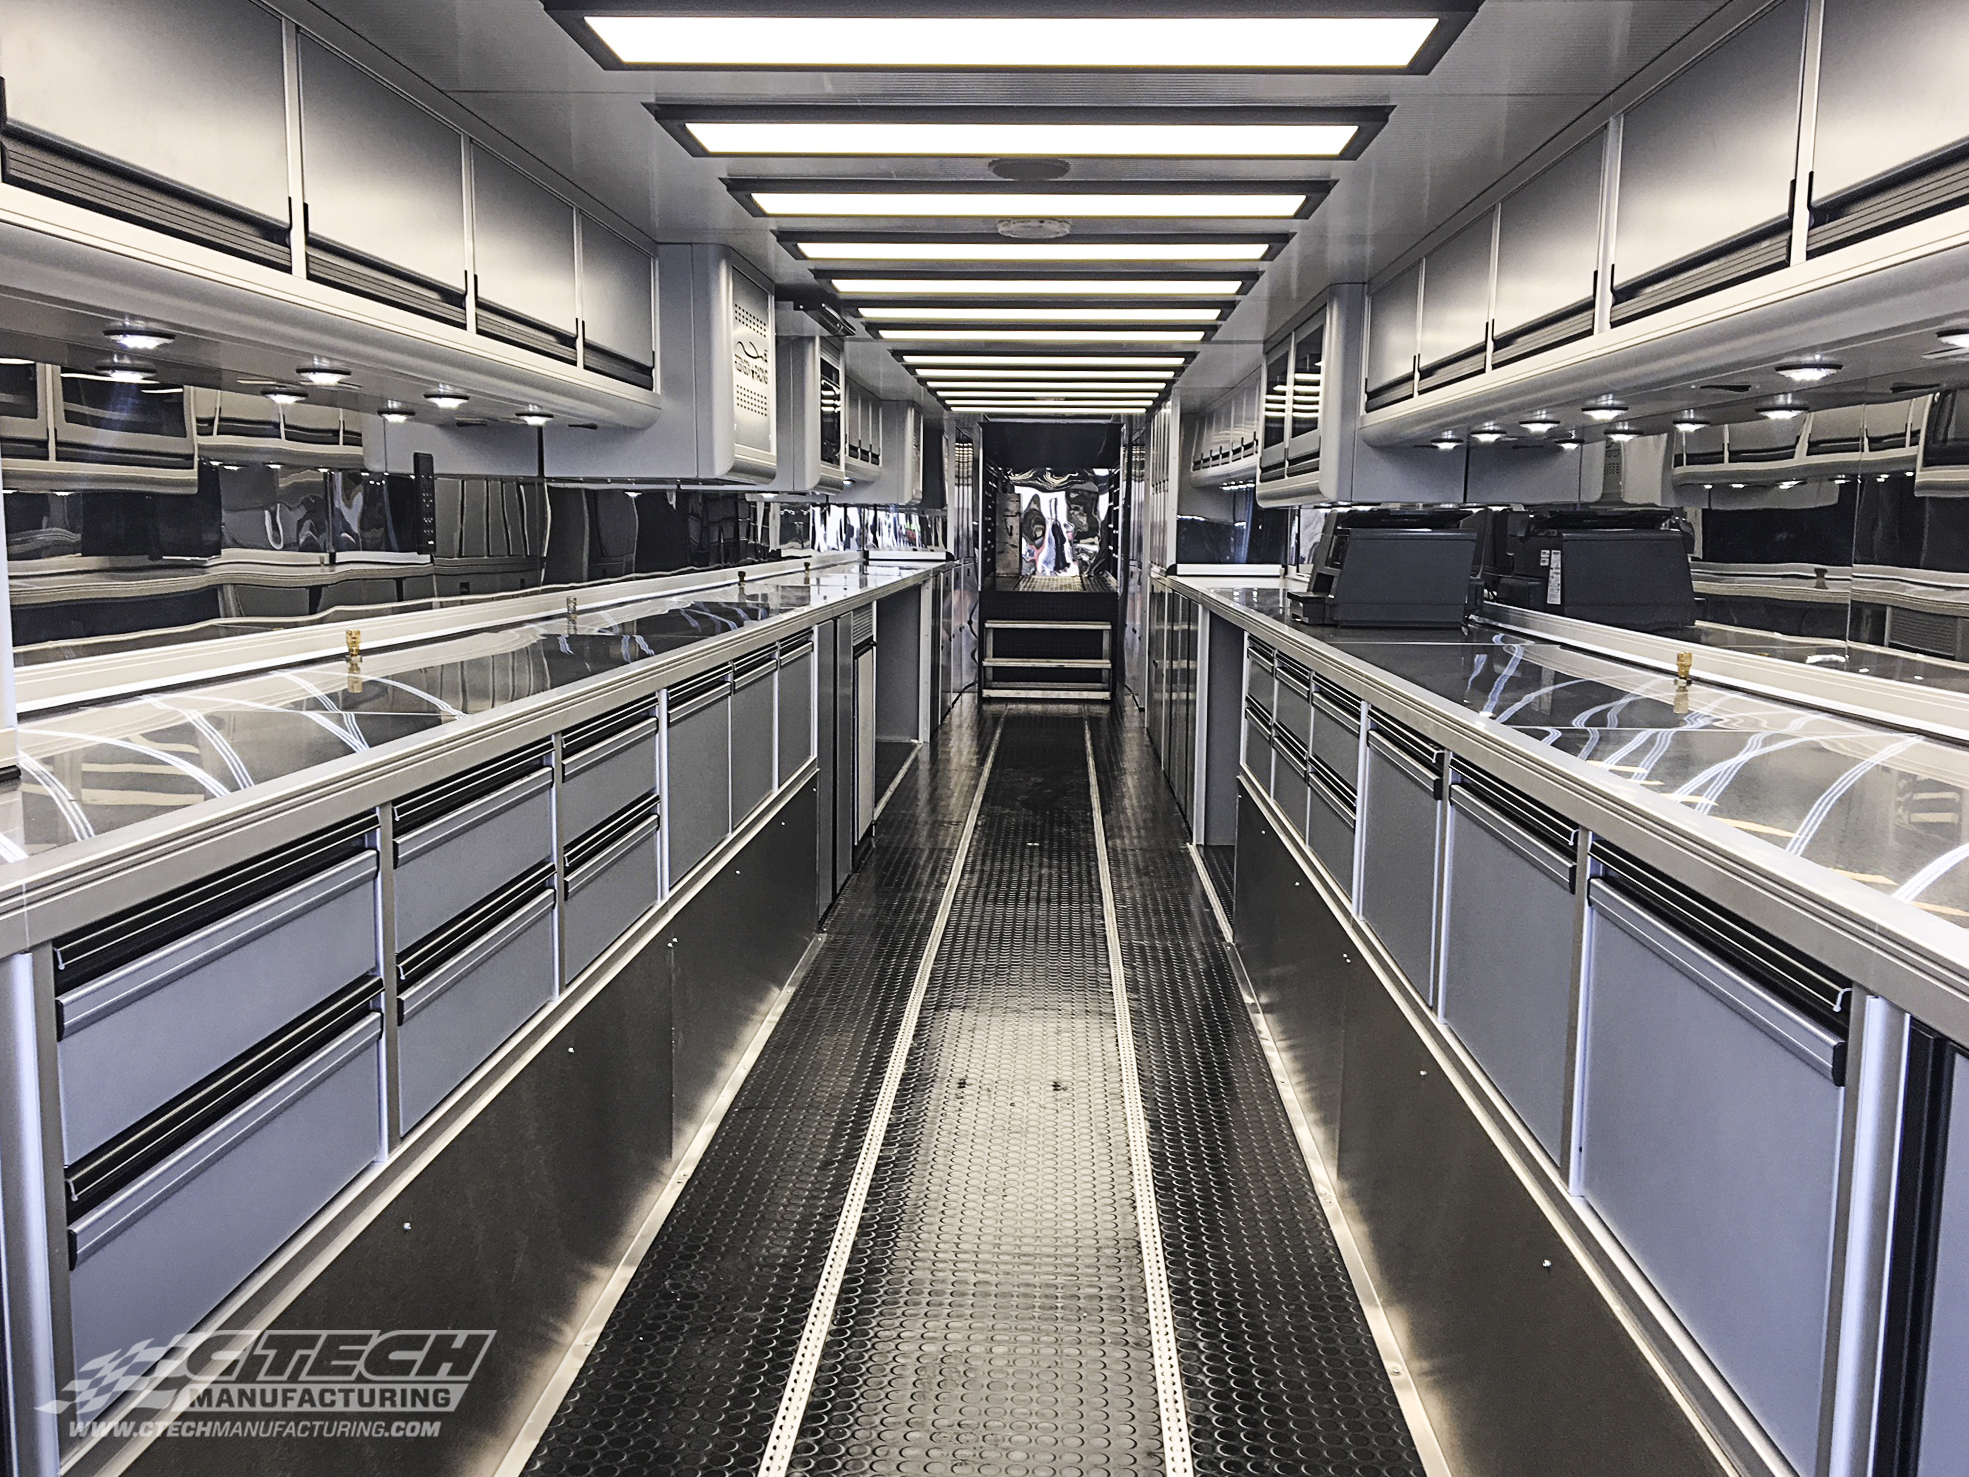 Motorsport trailer/transporters rely on innovative engineering and creative design to overcome space and weight constraints. The team at Turnkey Industries / Robinson Racing did just that with their latest hauler. BOM 42065